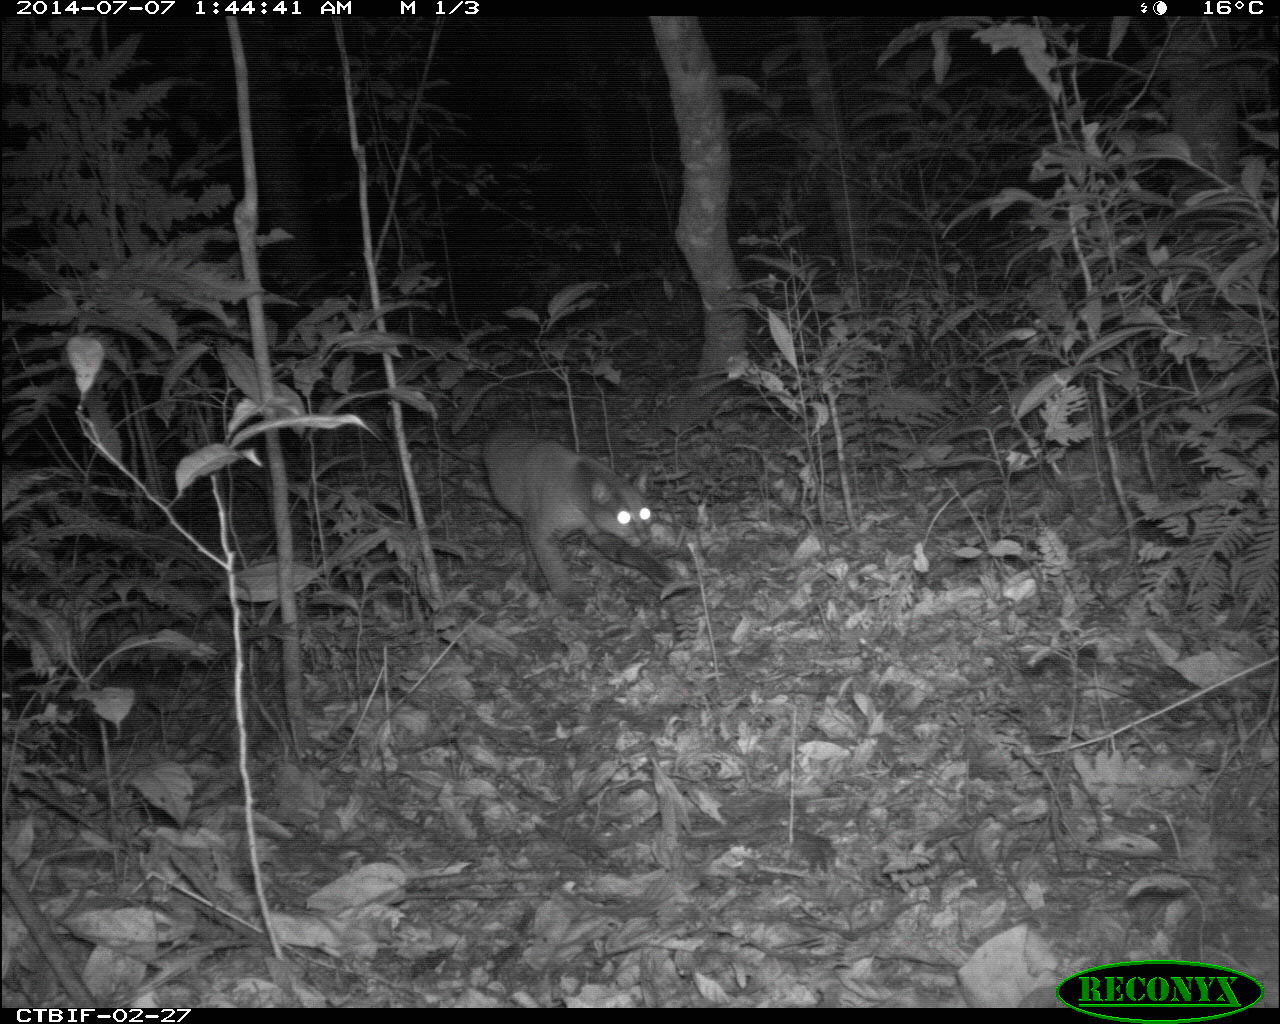 African golden cat (Caracal aurata). TEAM researchers saw an increase in sightings of this species when park managers in Bwindi Impenetrable Forest redirected tourist trails out of popular golden cat habitat. Image credit: TEAM Network and Wildlife Conservation Society